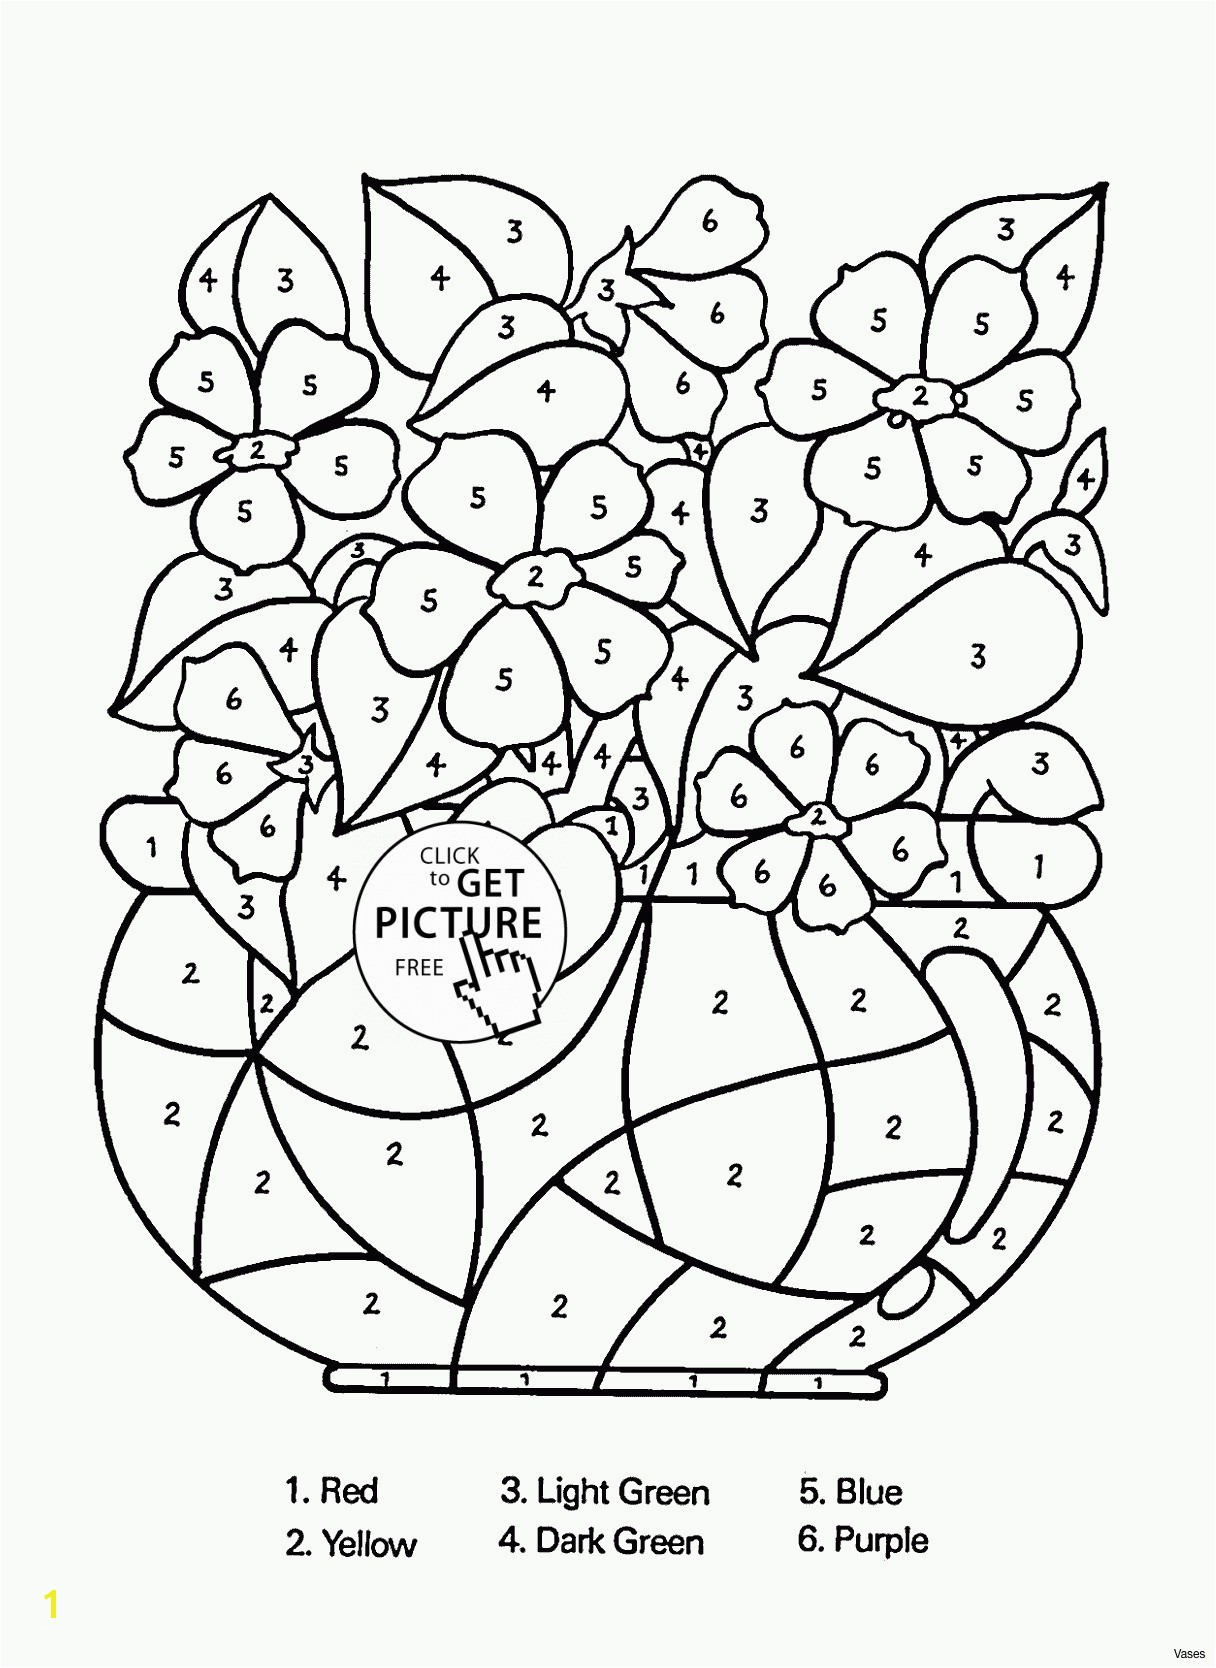 free relaxing coloring pages awesome fashion coloring pages inspirational printable cds 0d fun time